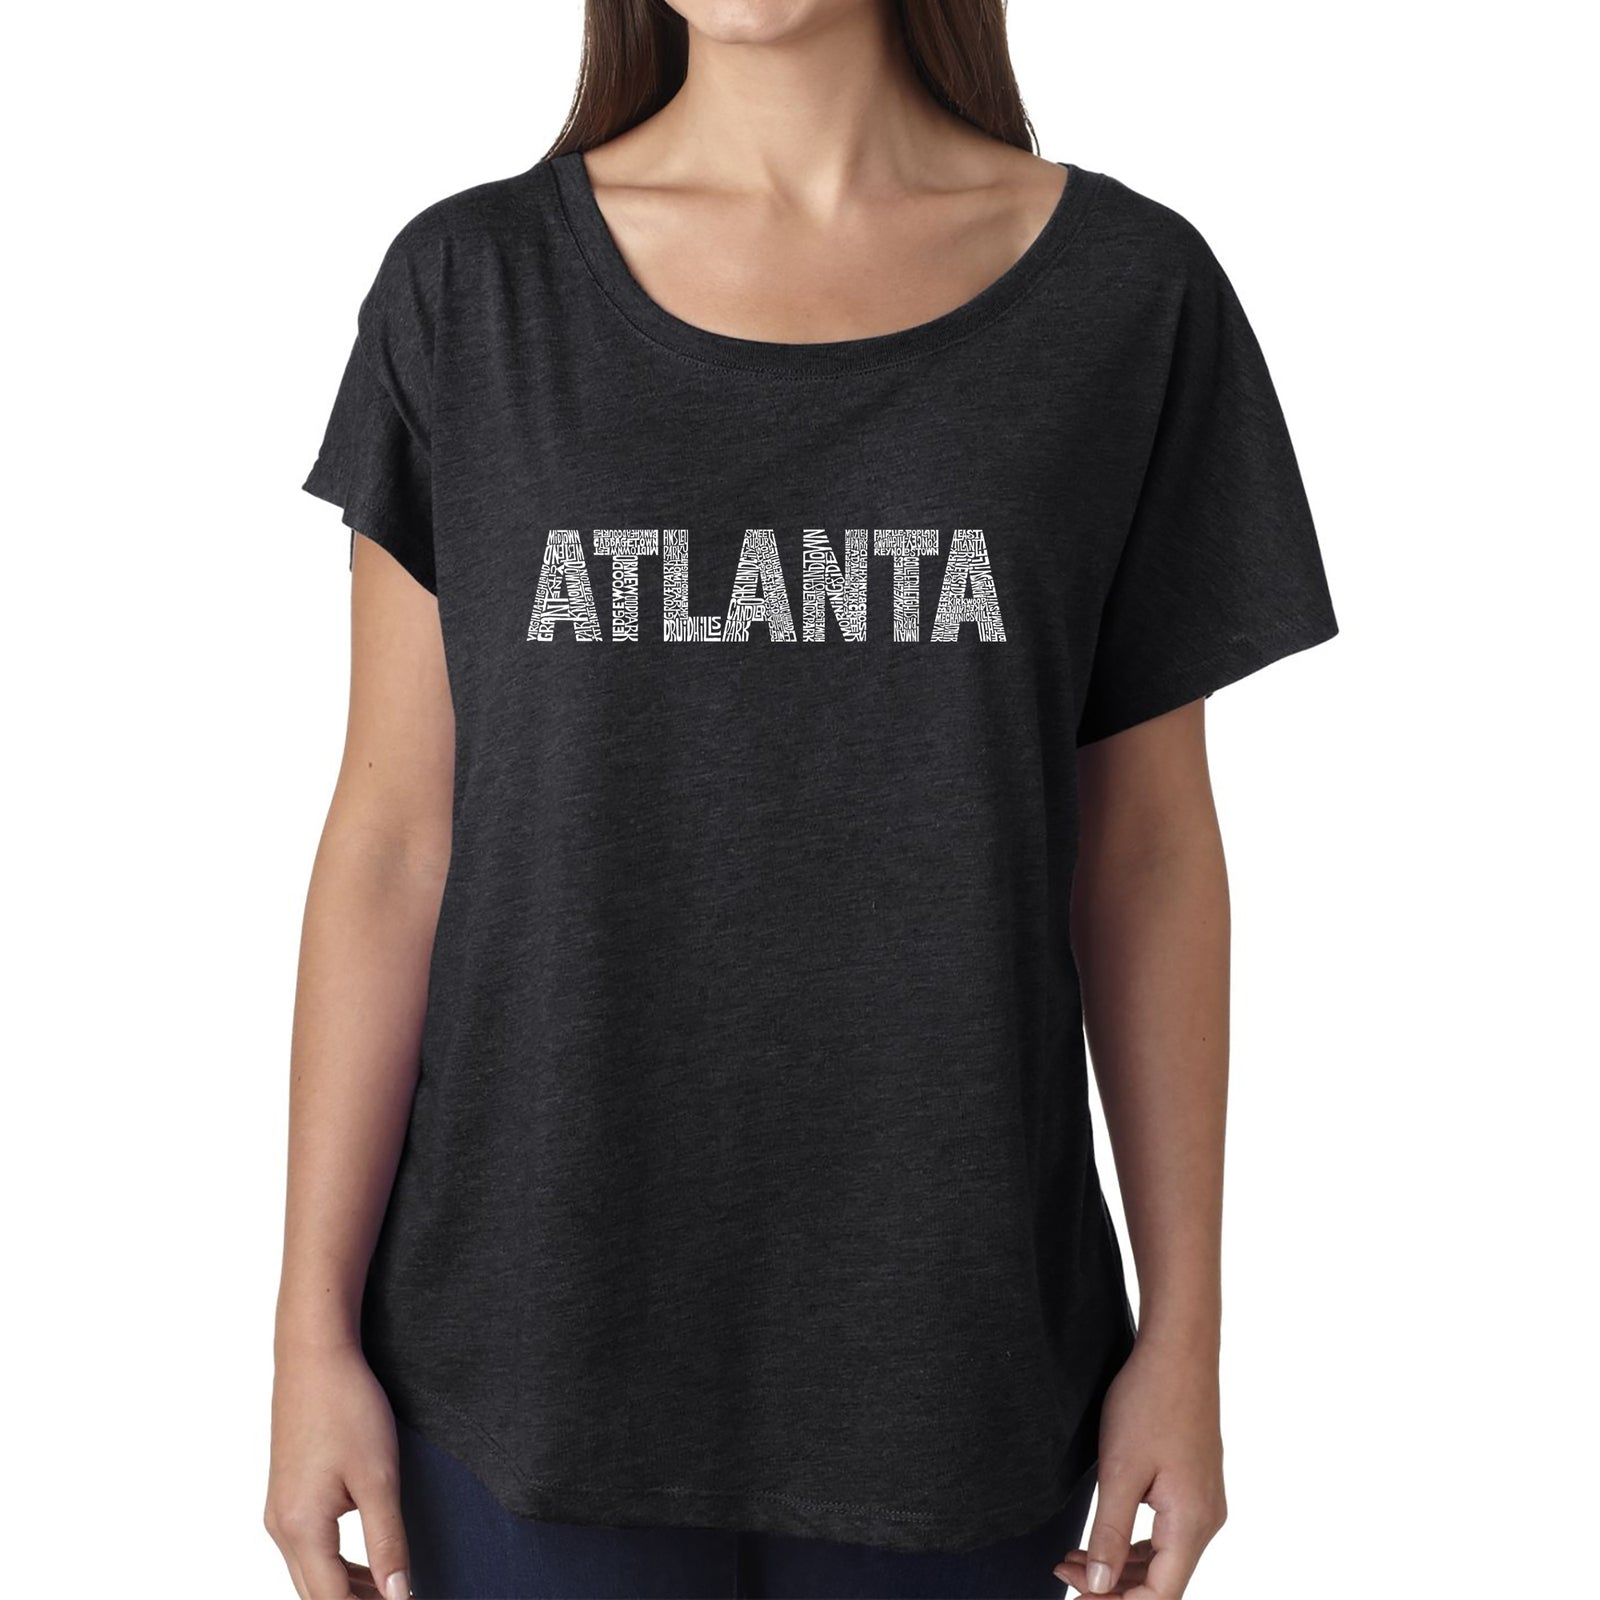 Women's Loose Fit Dolman Cut Word Art Shirt - ATLANTA NEIGHBORHOODS